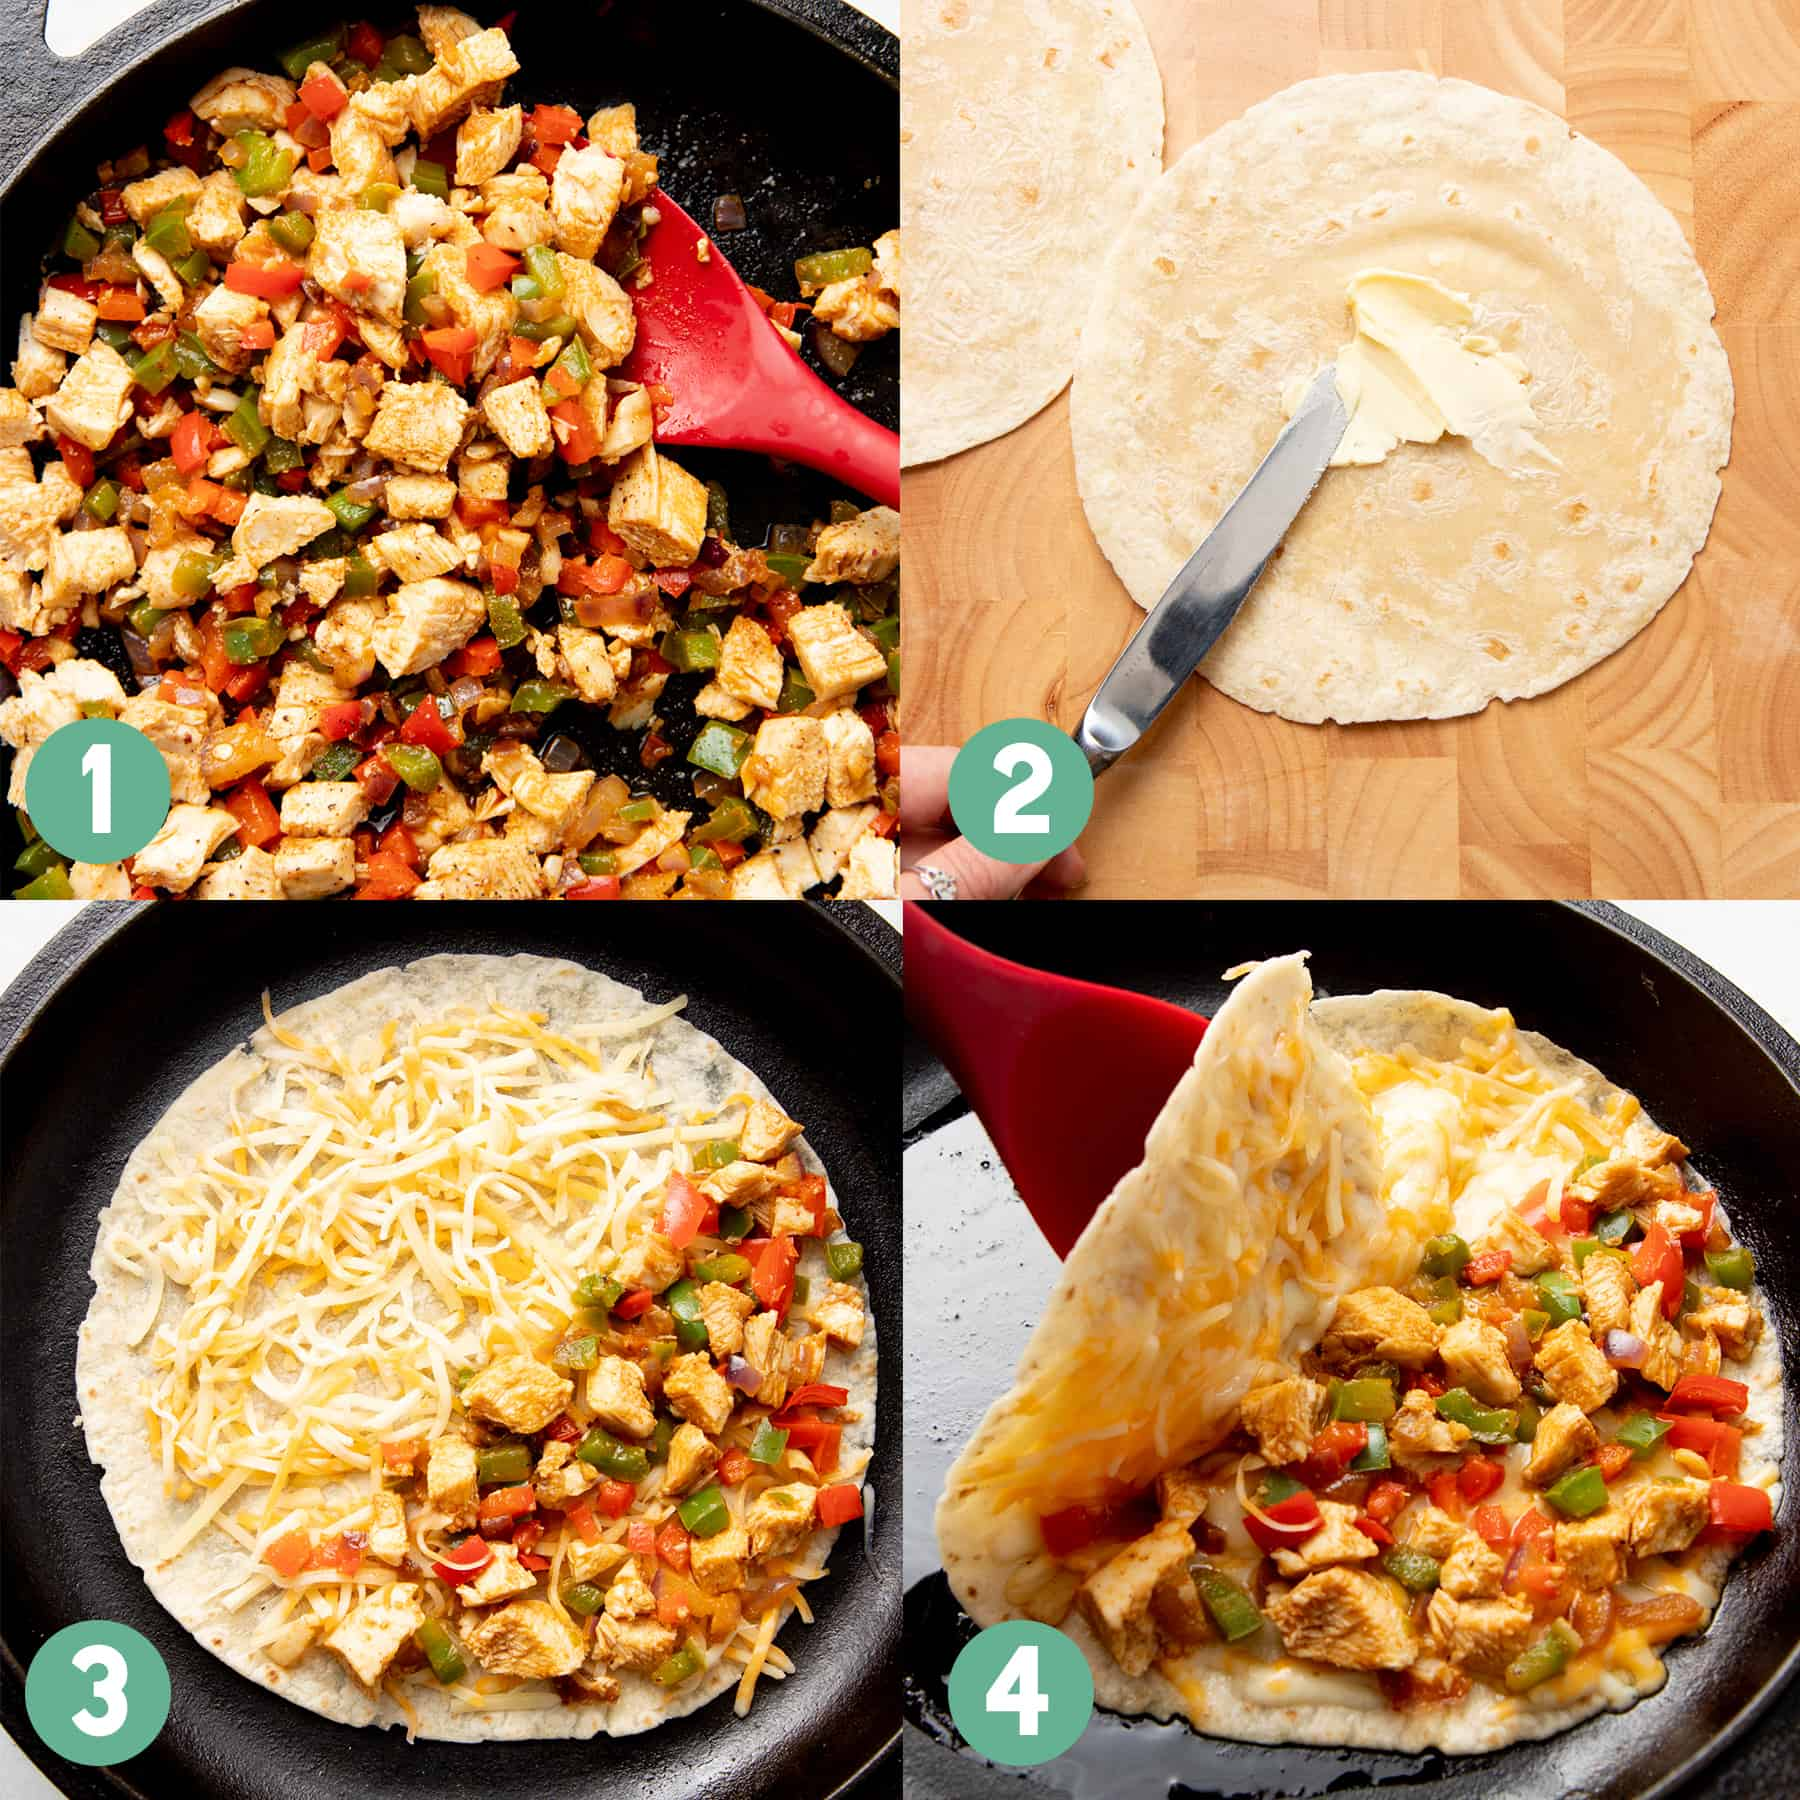 Split image showing the 4 steps of making a quesadilla- cooking the filling, buttering the tortilla, cooking in a cast iron skillet, and folding the tortilla in half.